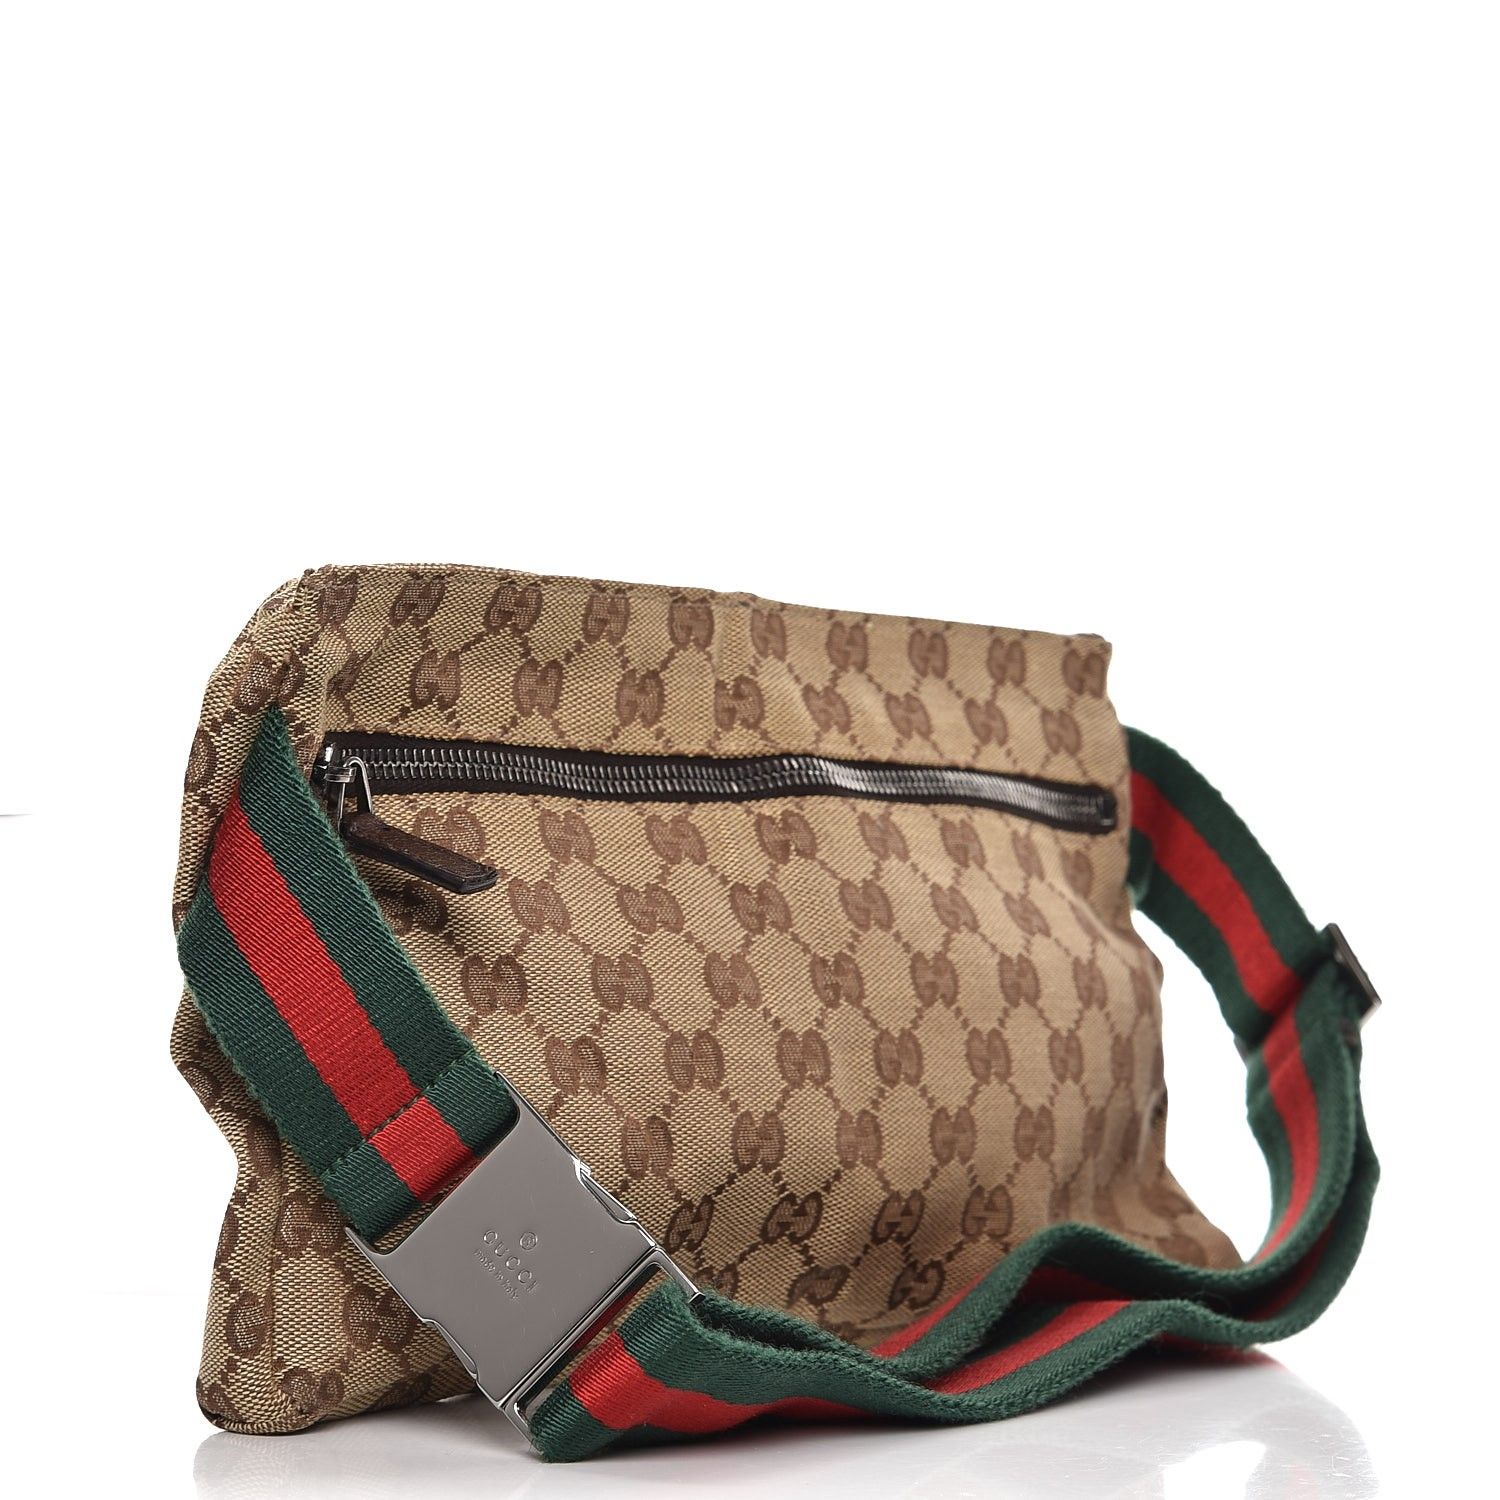 bda727f0d54 This is an authentic GUCCI Monogram Web Belt Bag in Dark Brown. This chic  belt